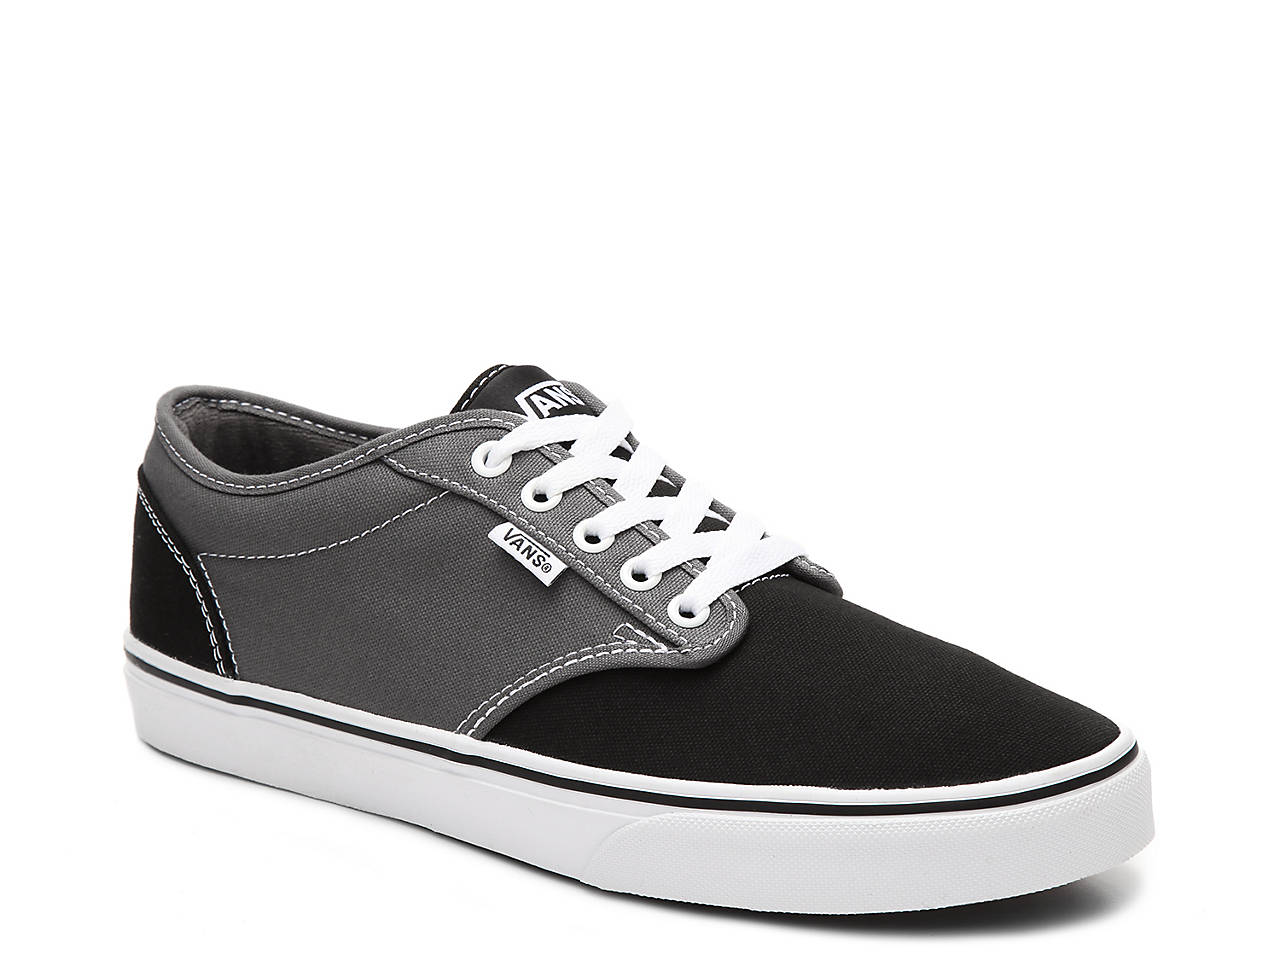 Vans Atwood Two Tone Sneaker - Men s Men s Shoes  78ae6aea3